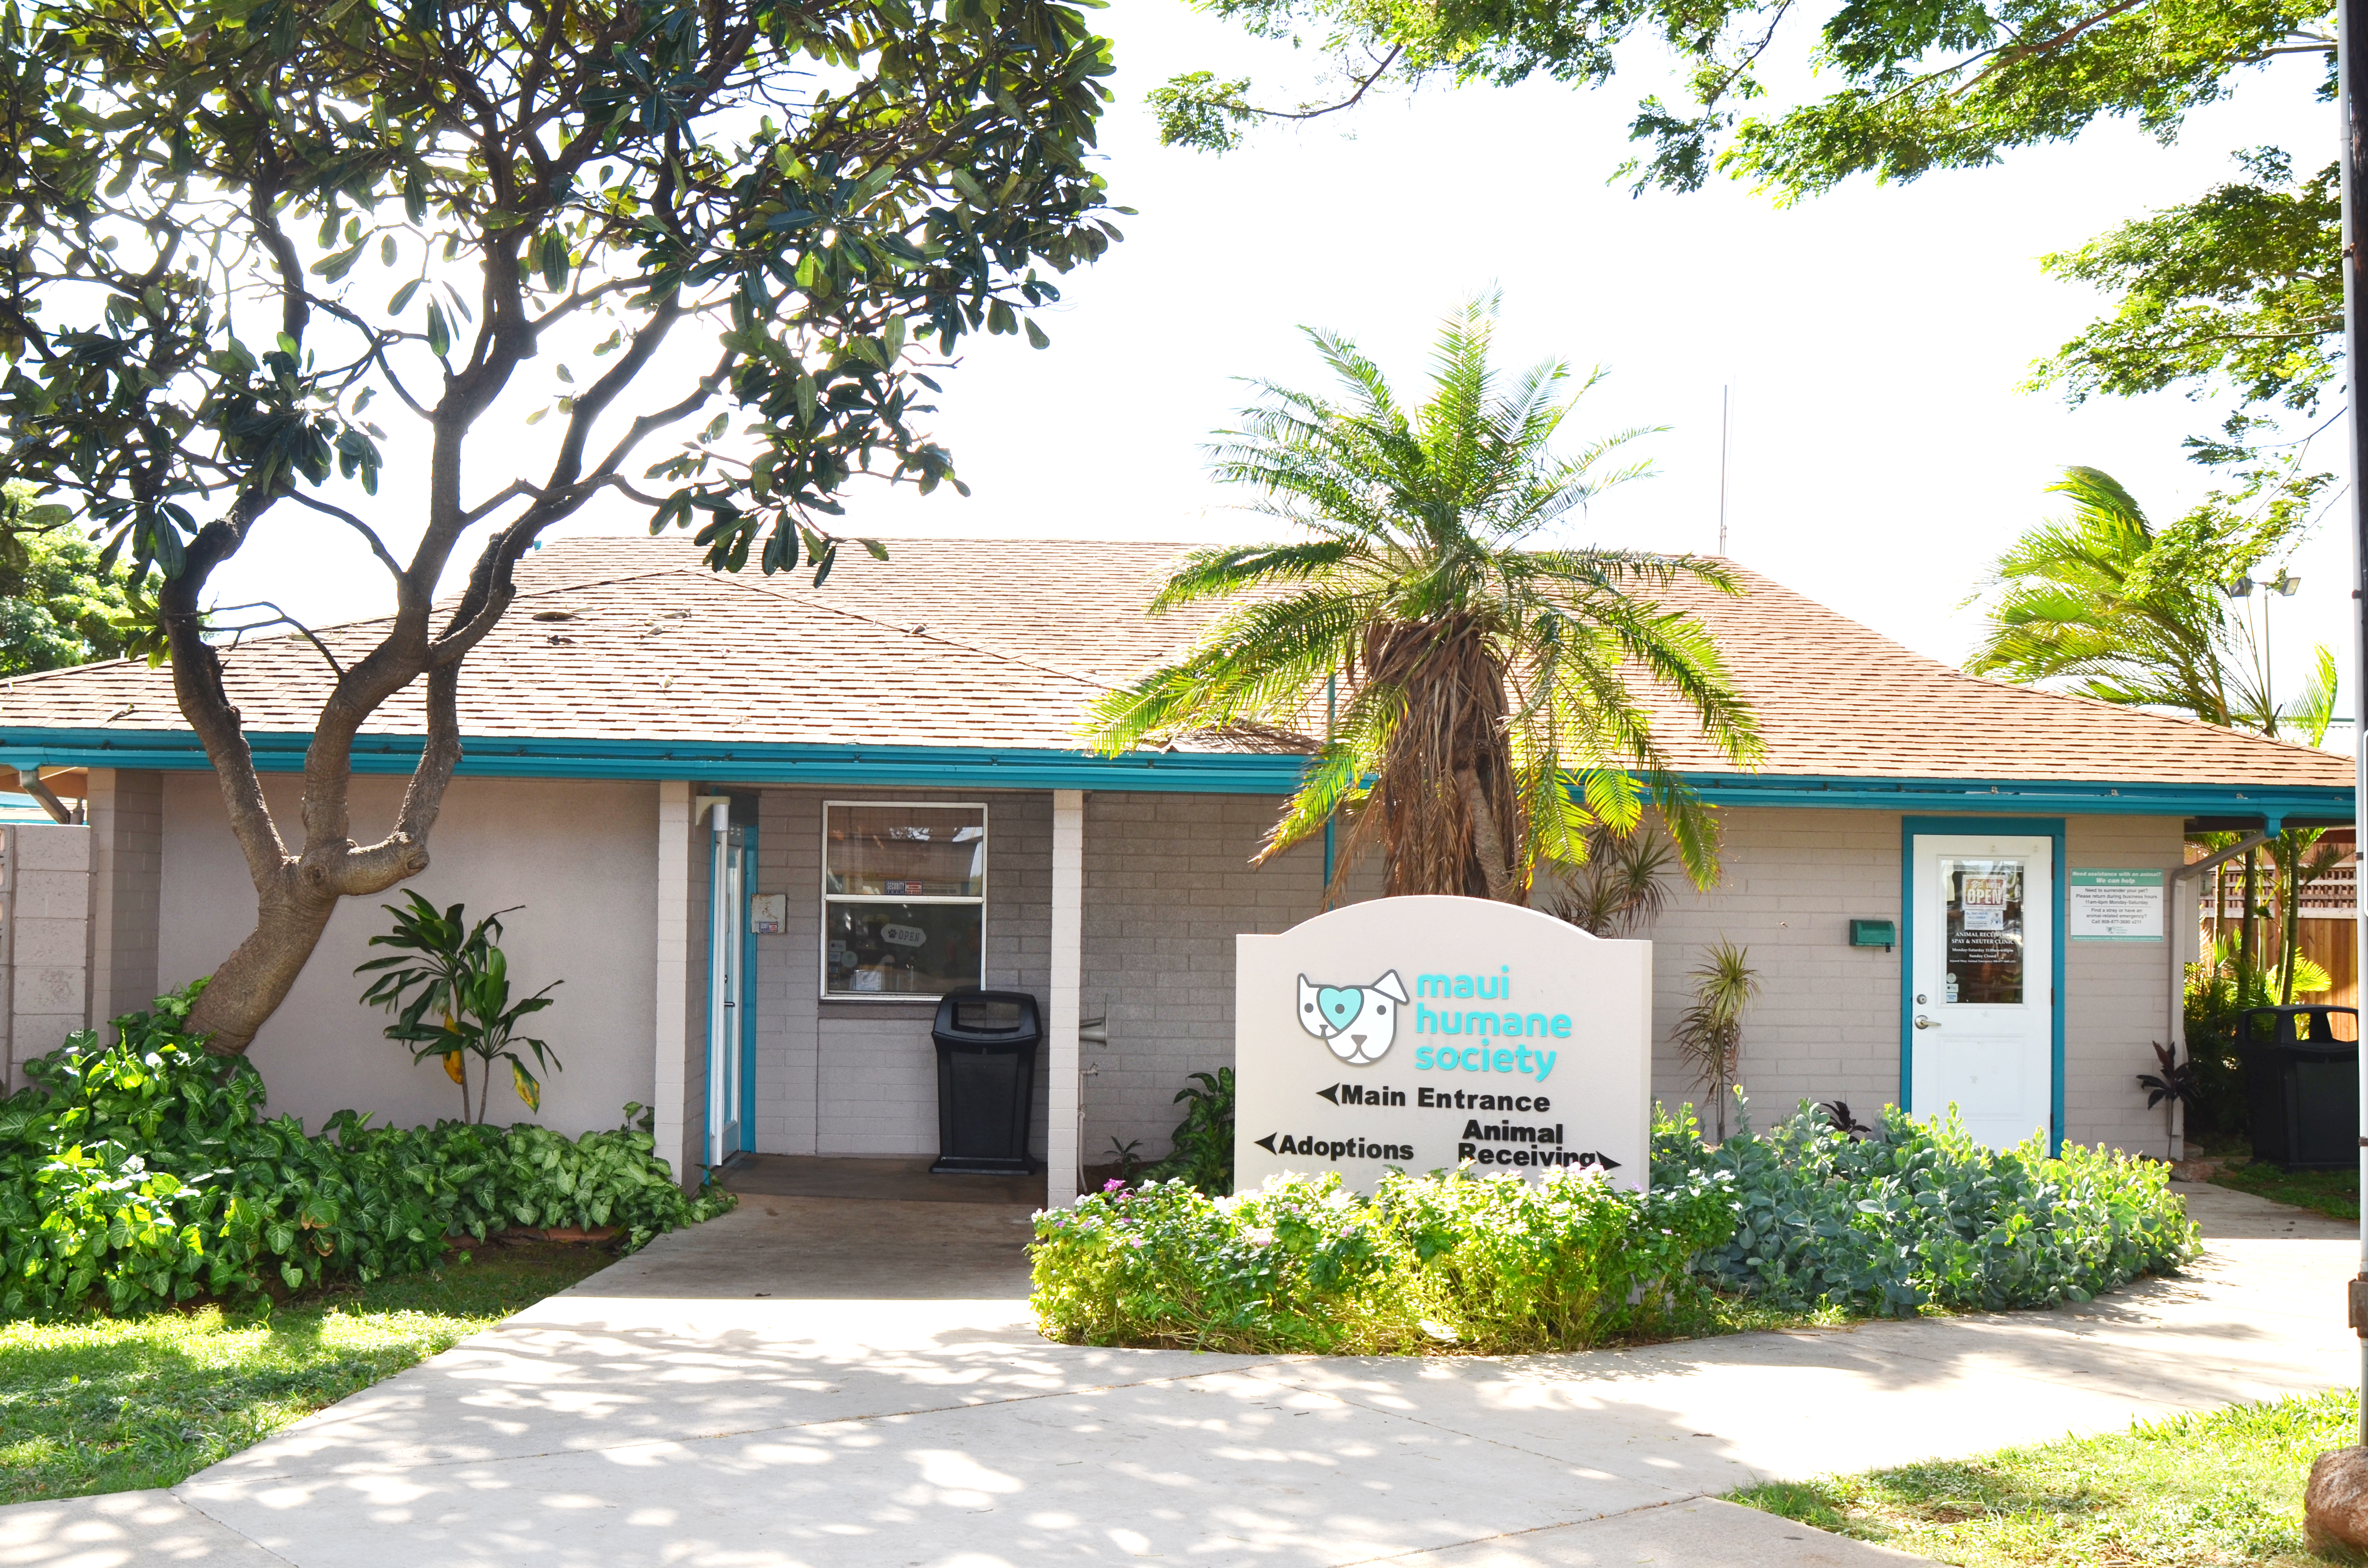 """Reduced Adoption Fees During Maui """"Empty the Shelter"""" Event, May 5-9"""